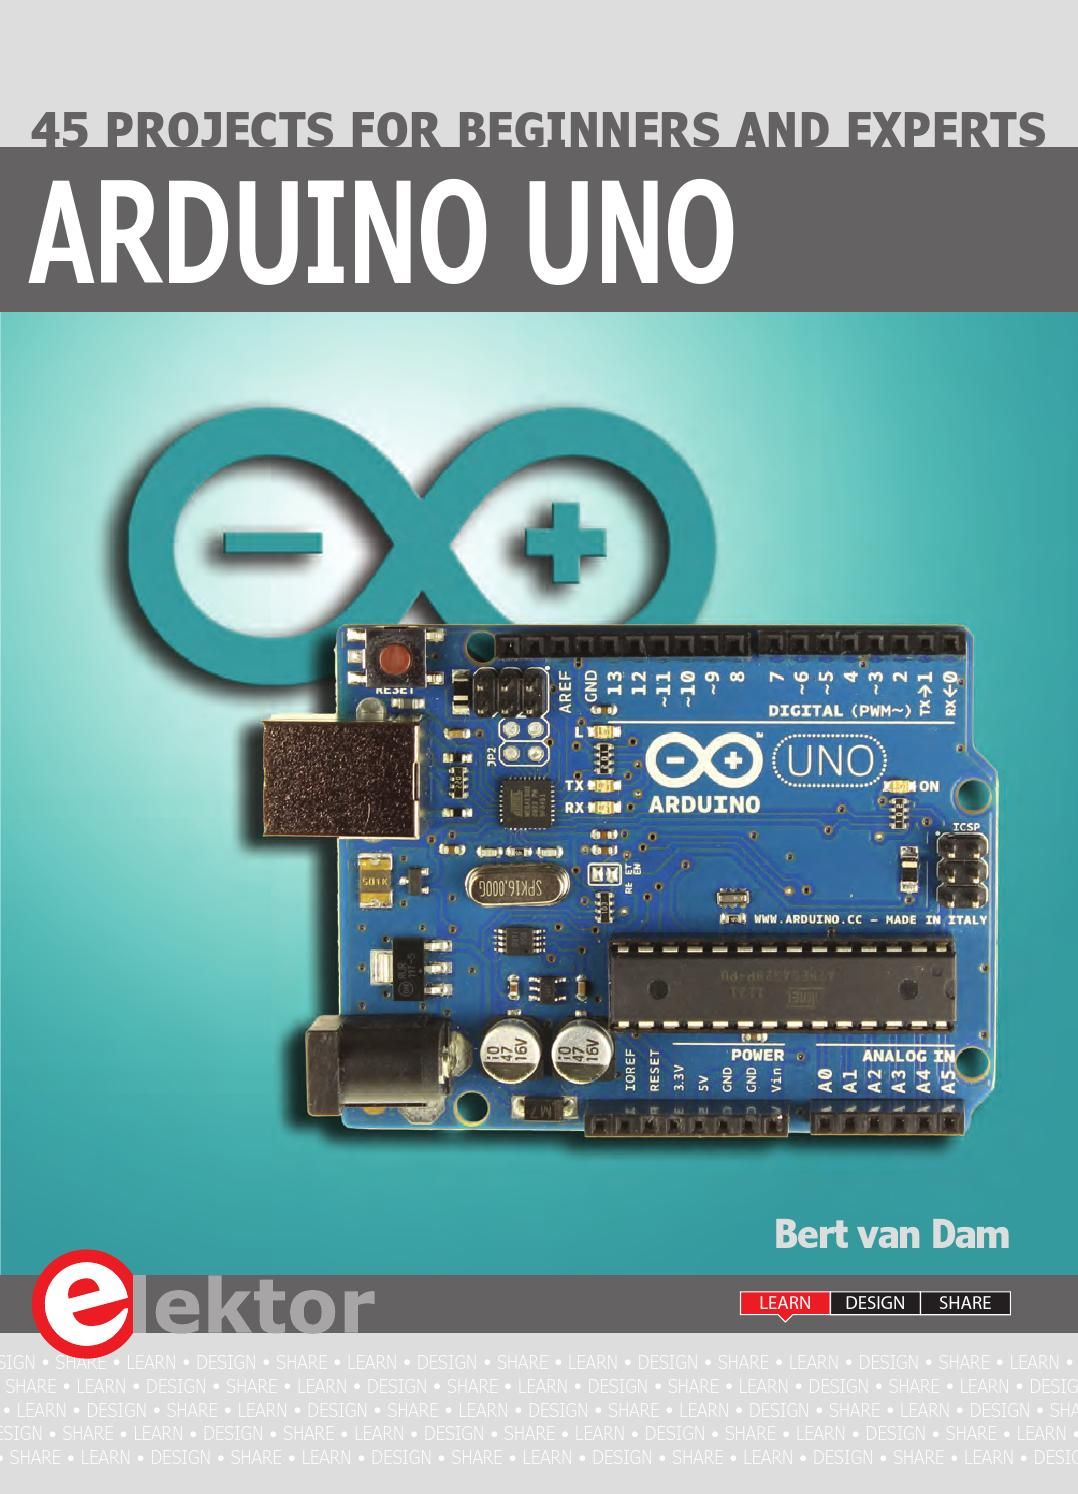 Arduino Uno 45 Projects For Beginners And Experts In 2018 Mine Ultrasonic Water Level Controller Using 8051 Electronic Circuits This Book Covers A Series Of Exciting Fun The Such As Silent Alarm People Sensor Light Motor Control Internet